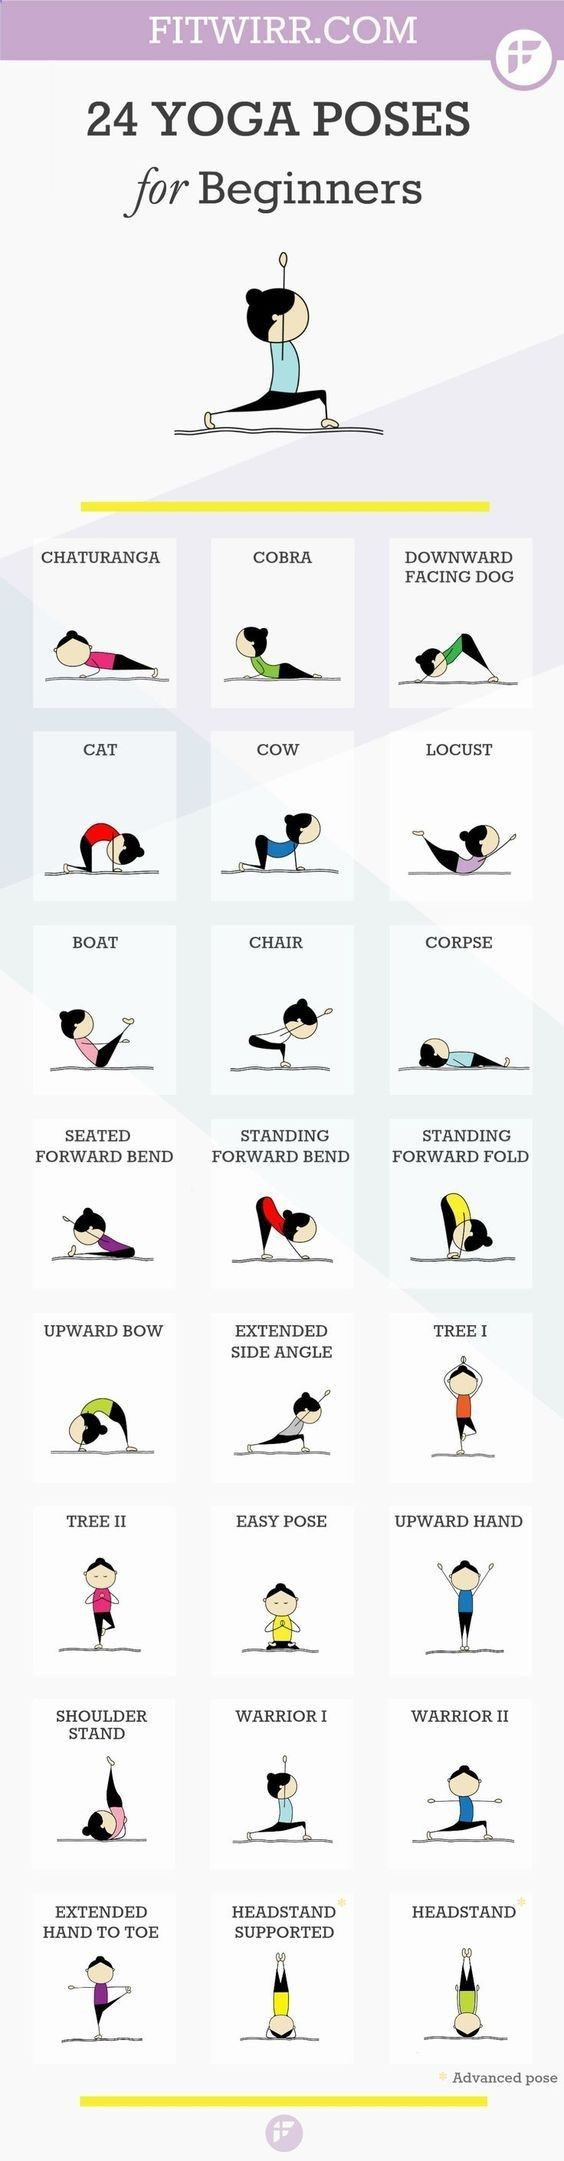 Yoga-Get Your Sexiest Body Ever Without - DownDog Healthy Lifestyle Tips: 24 Beginners Yoga Poses You Can Start with at Home. From the Downdog Diary Yoga Blog found exclusively at DownDog Boutique Get your sexiest body ever without,crunches,cardio,or ever setting foot in a gym